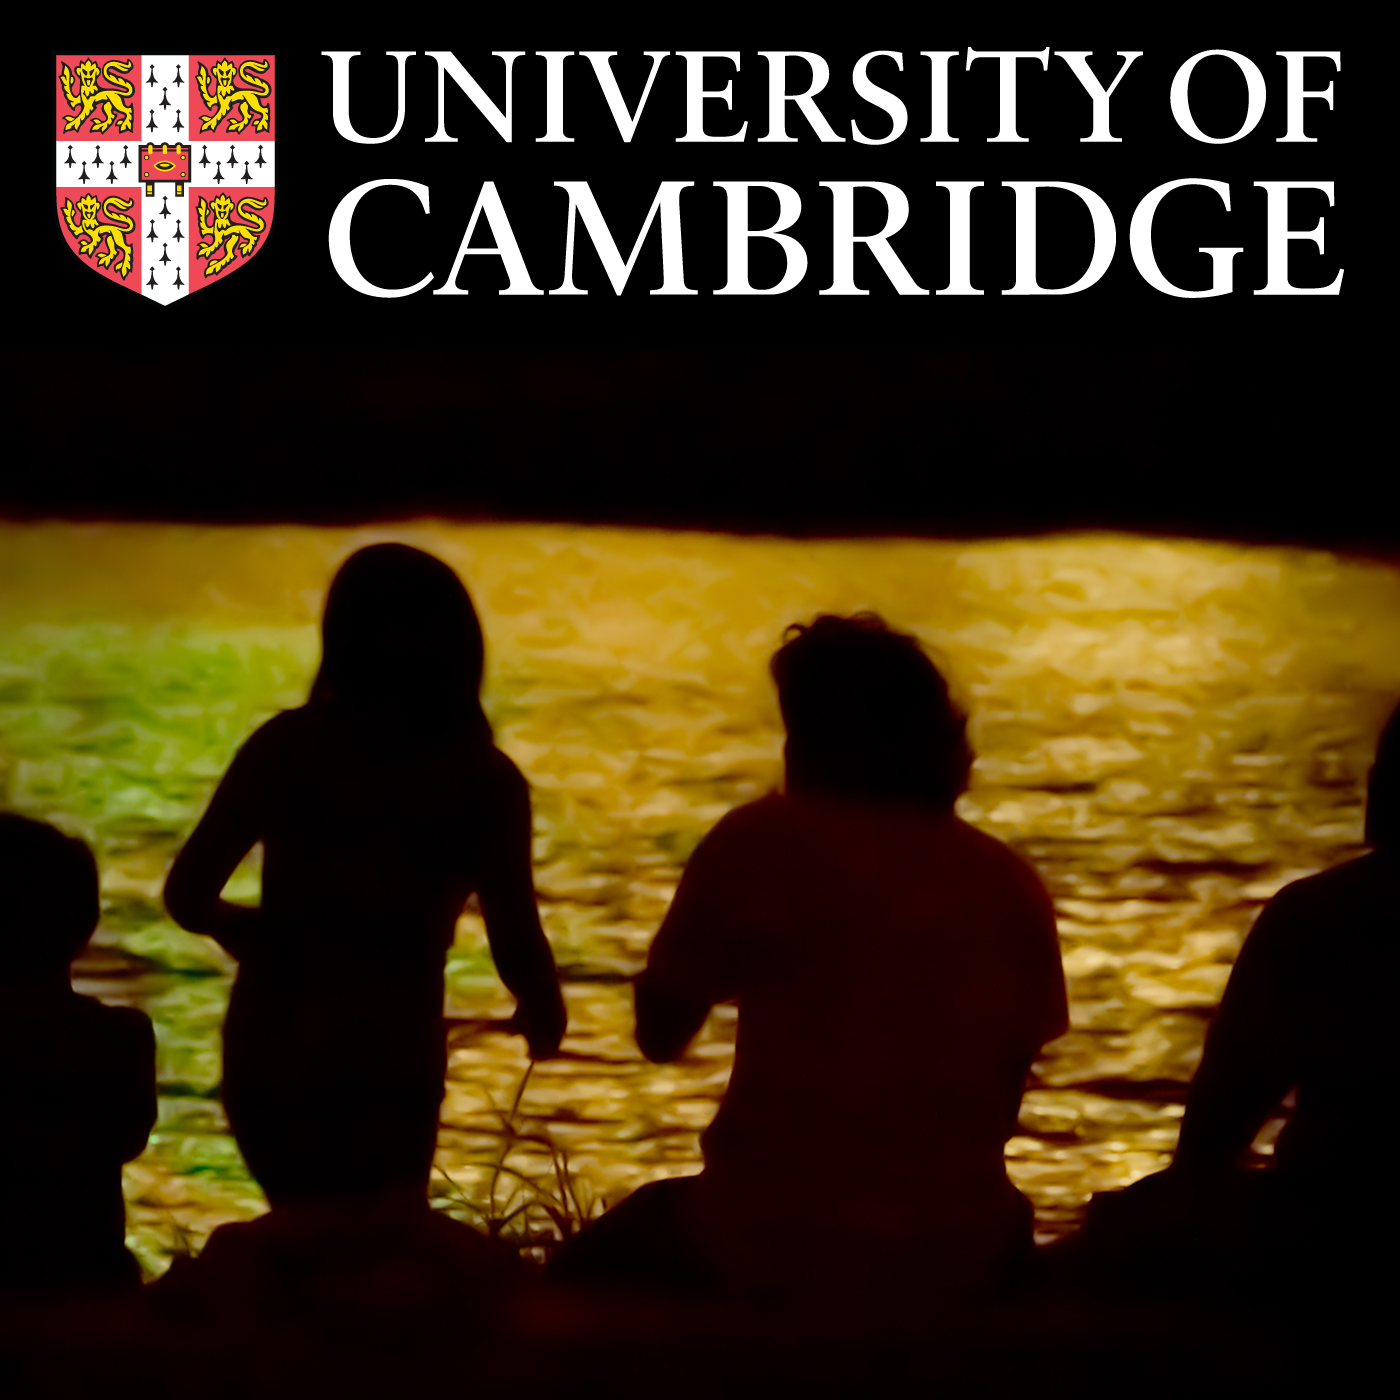 Centre for Family Research Podcast series's image